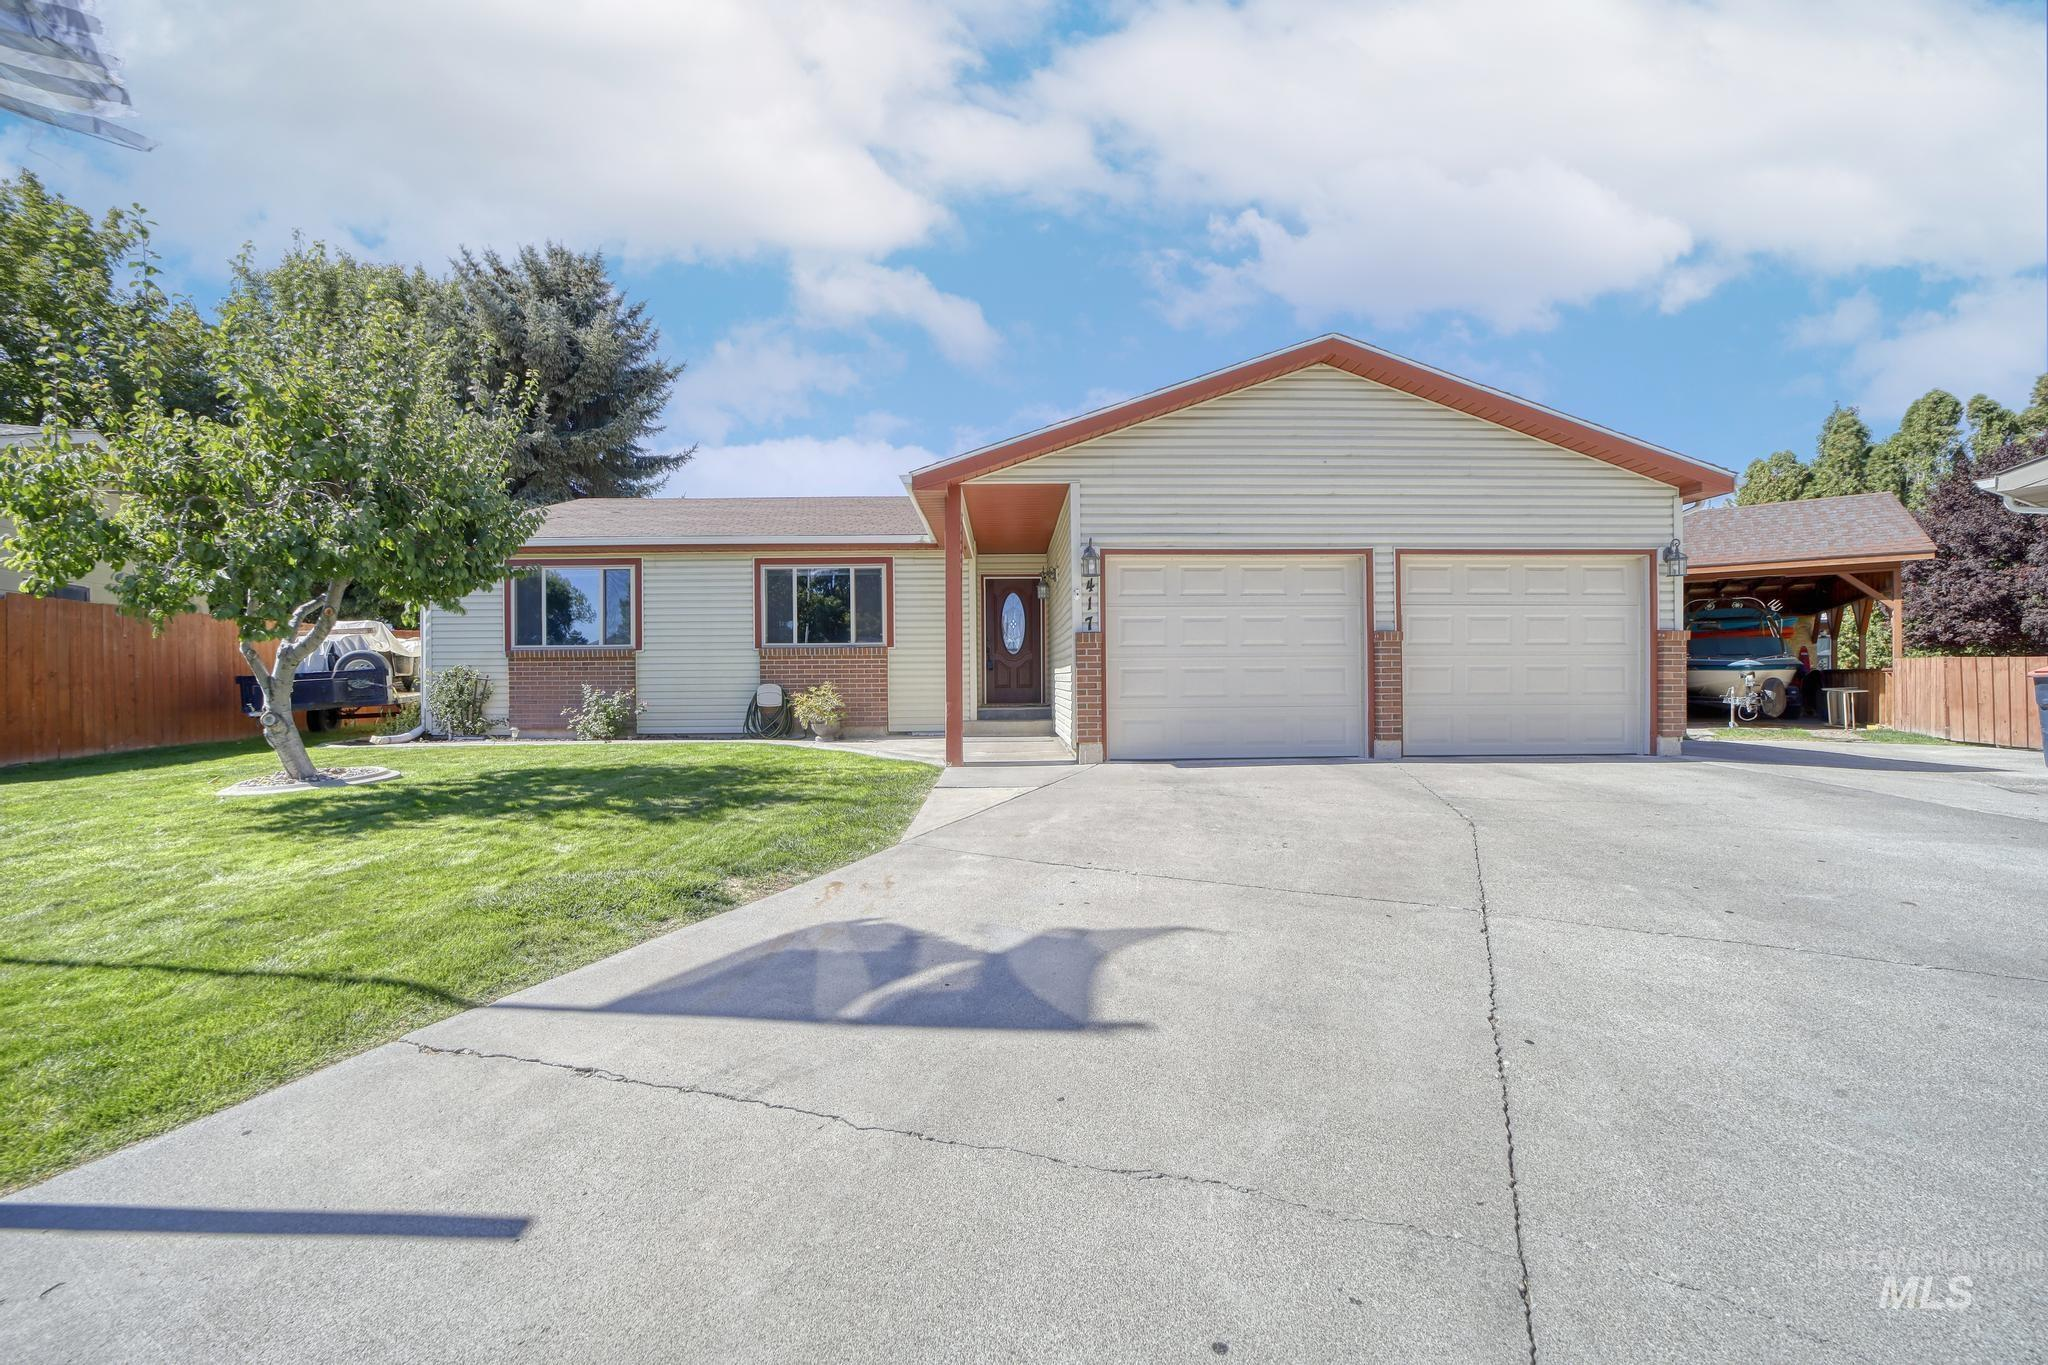 JUST THE PLACE AND THE PRICE! Beautifully updated and well-maintained, single-level home located on a quiet cul-de-sac in NW Twin Falls near the College of Southern Idaho. You will love the brand new kitchen remodel, open floor plan, wood flooring, fresh paint throughout, fireplace, enclosed sun room, new HVAC system with new heat pump, low maintenance exterior,  private backyard, and oversized storage shed. - Cindy L Collins, Voice: 208-280-5336, Berkshire Hathaway HomeServices Idaho Homes & Properties, Main: 208-733-5336, https://www.thecollinsconnection.com